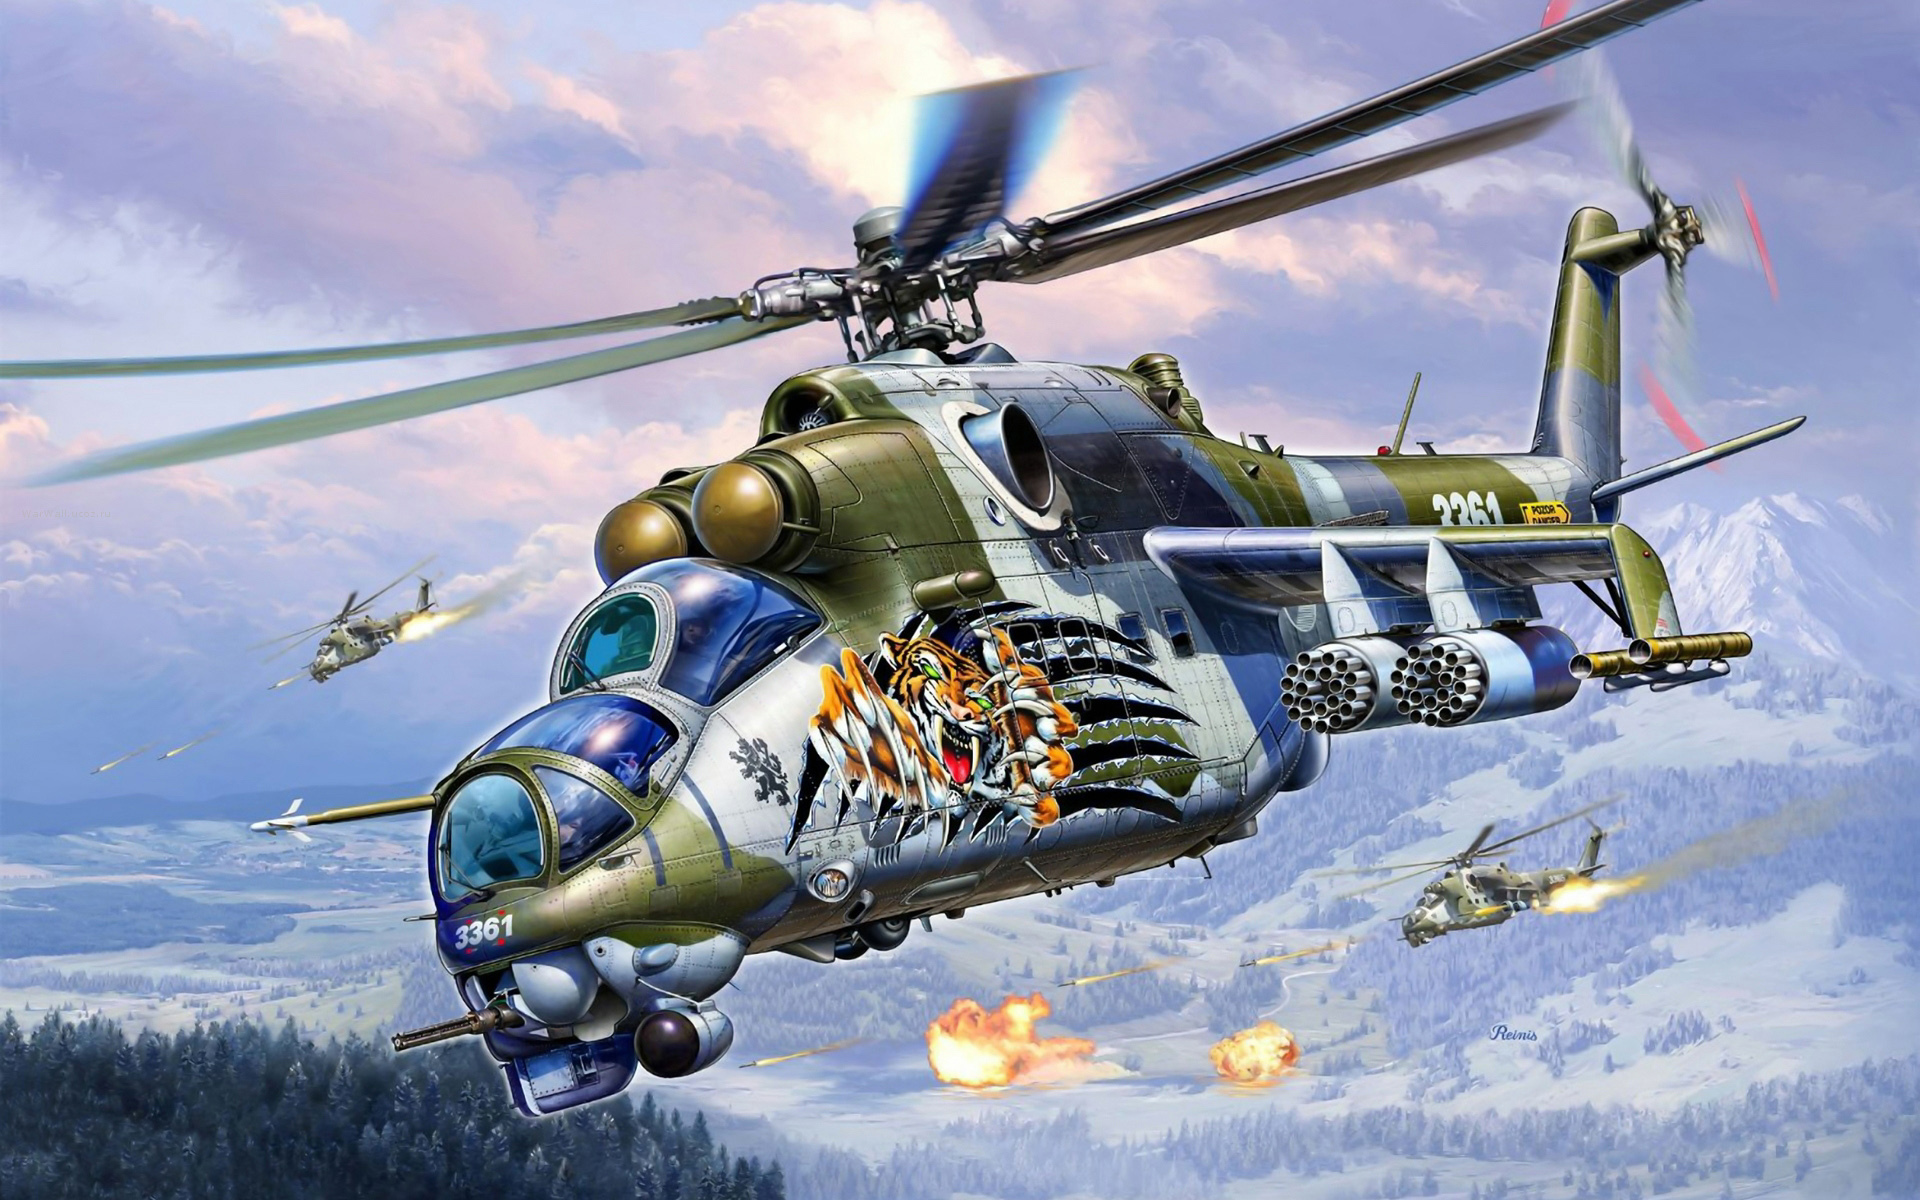 helicopter wallpaper with Art Vertalet Mi 24 Soviet Russian Transport Military Helicopter on Chinook Interior 509541765 as well Helicopter And Limousine besides Helicopter aircraft federal police highway Brazil also Art vertalet Mi 24 Soviet Russian transport military helicopter also Apocalypse now or platoon.